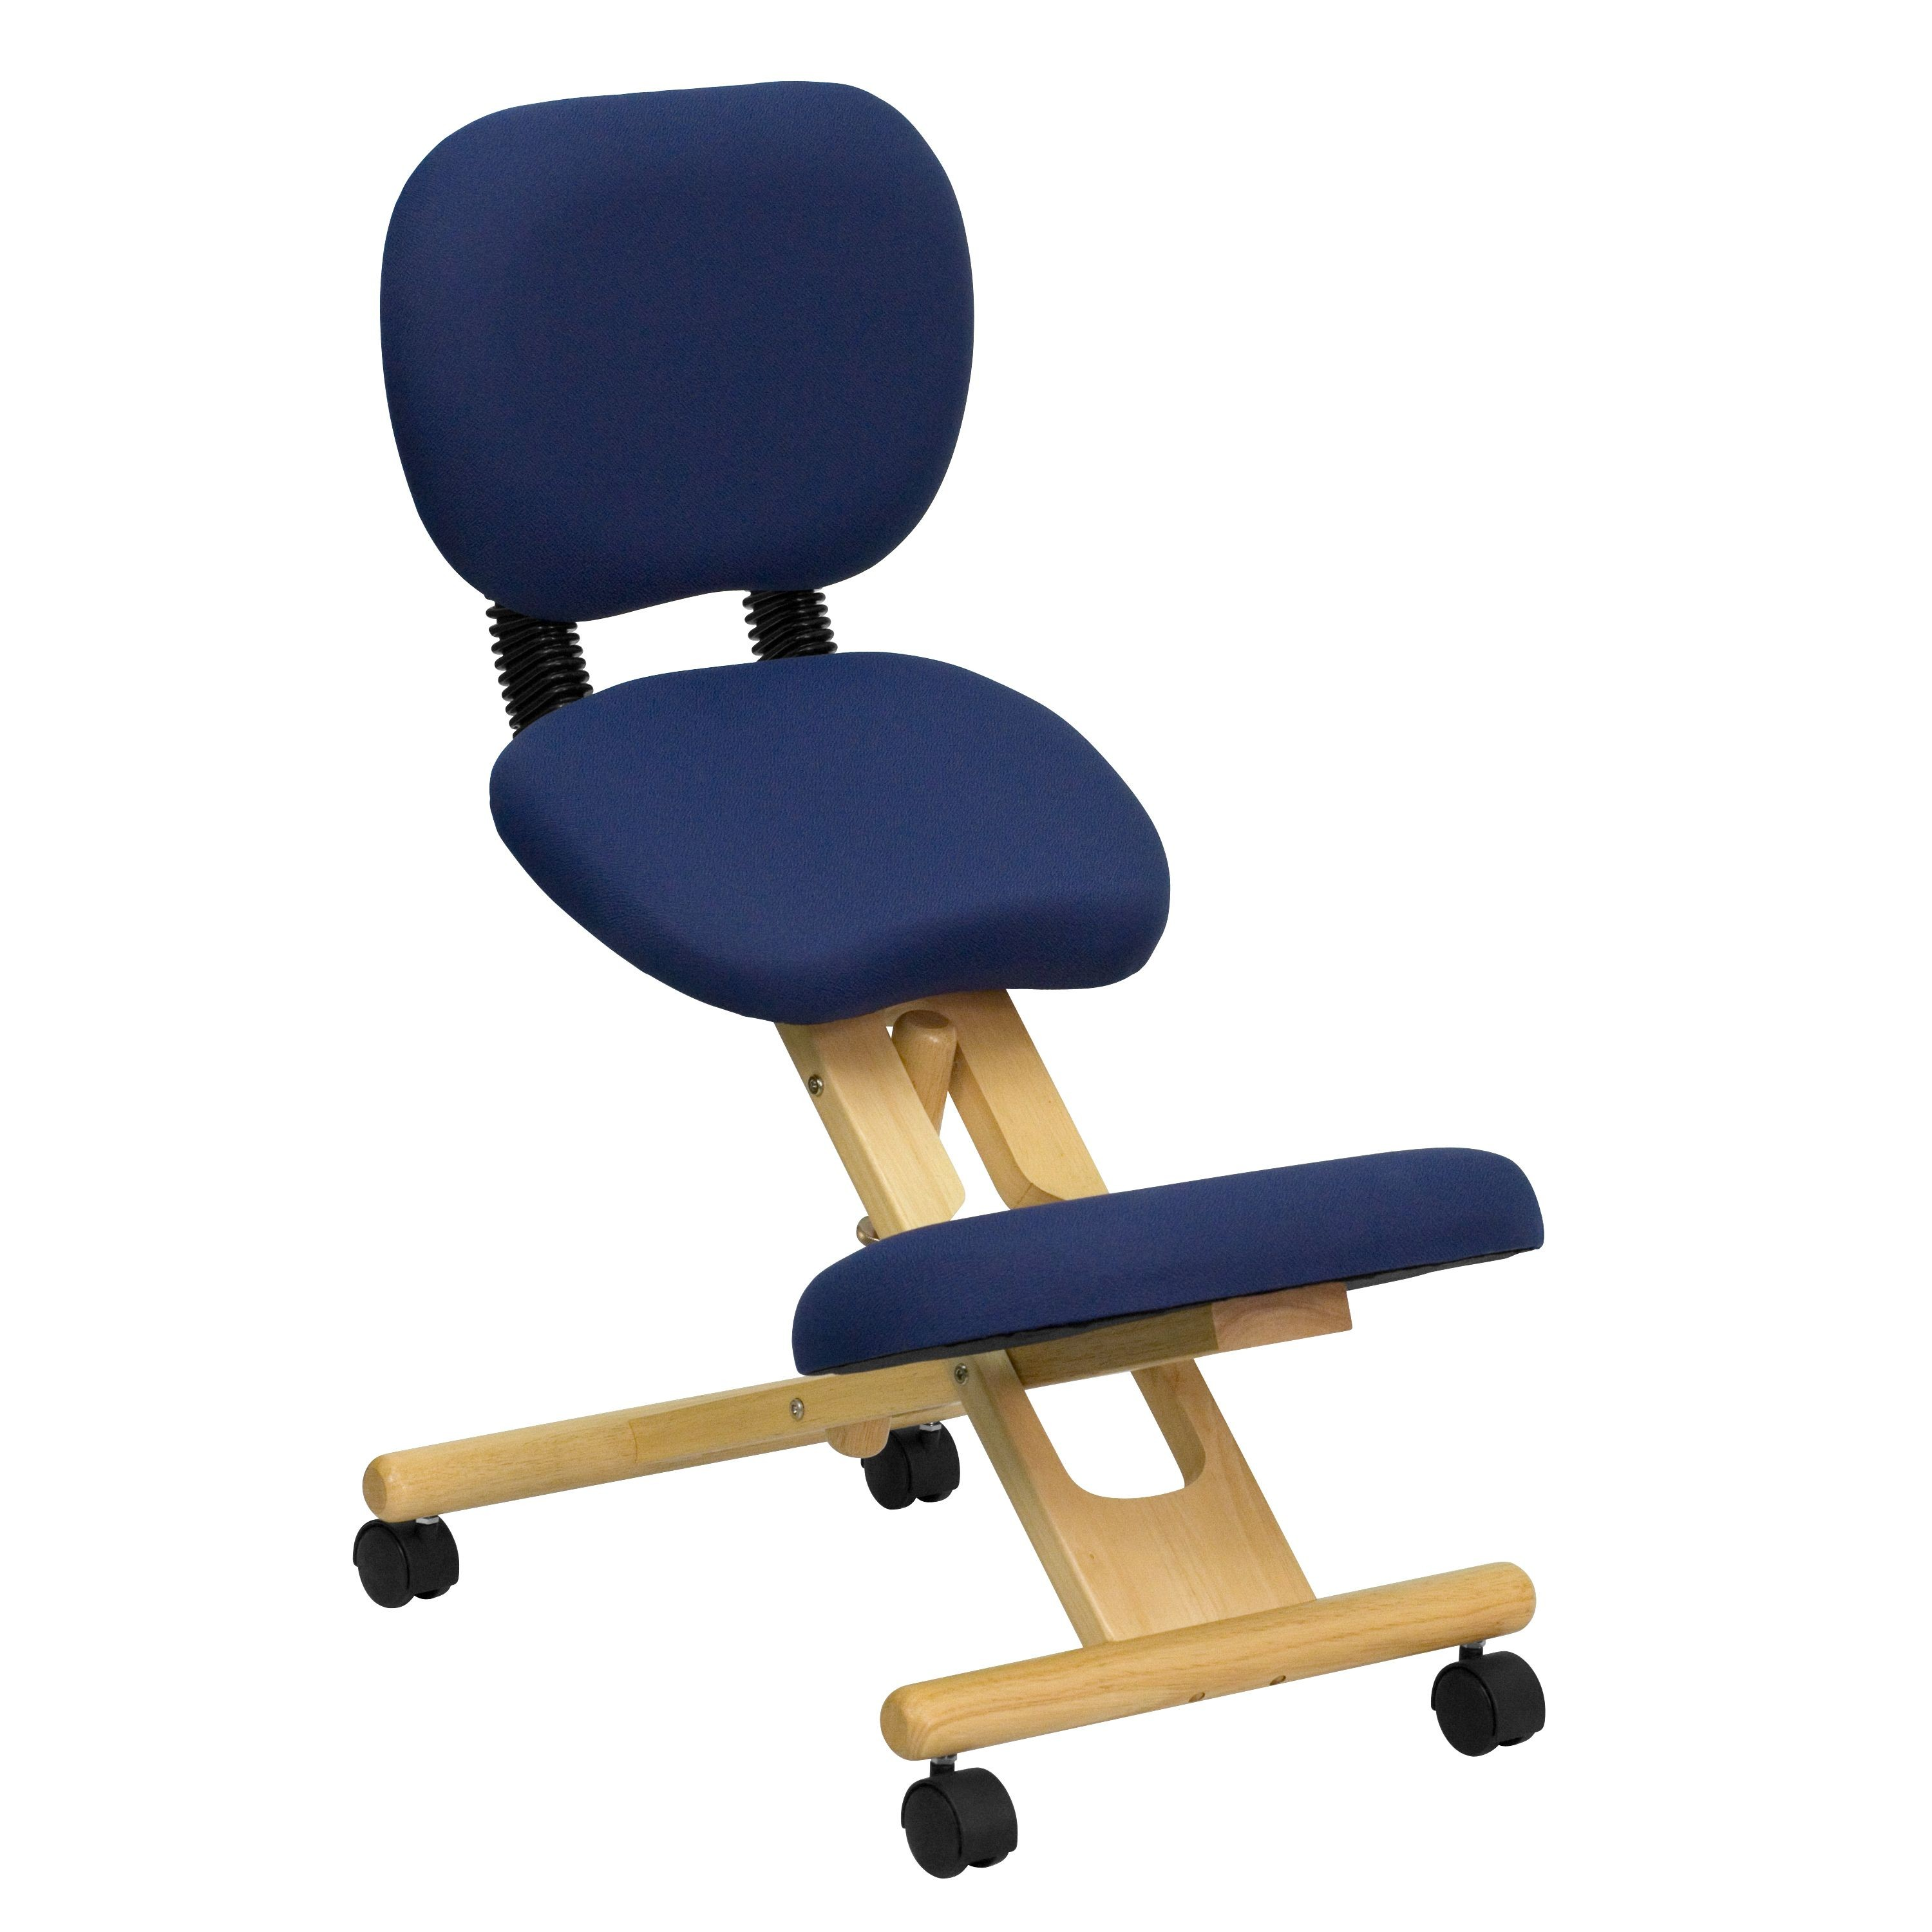 Flash Furniture WL-SB-310-GG Wooden Ergonomic Kneeling Posture Office Chair with Reclining Back